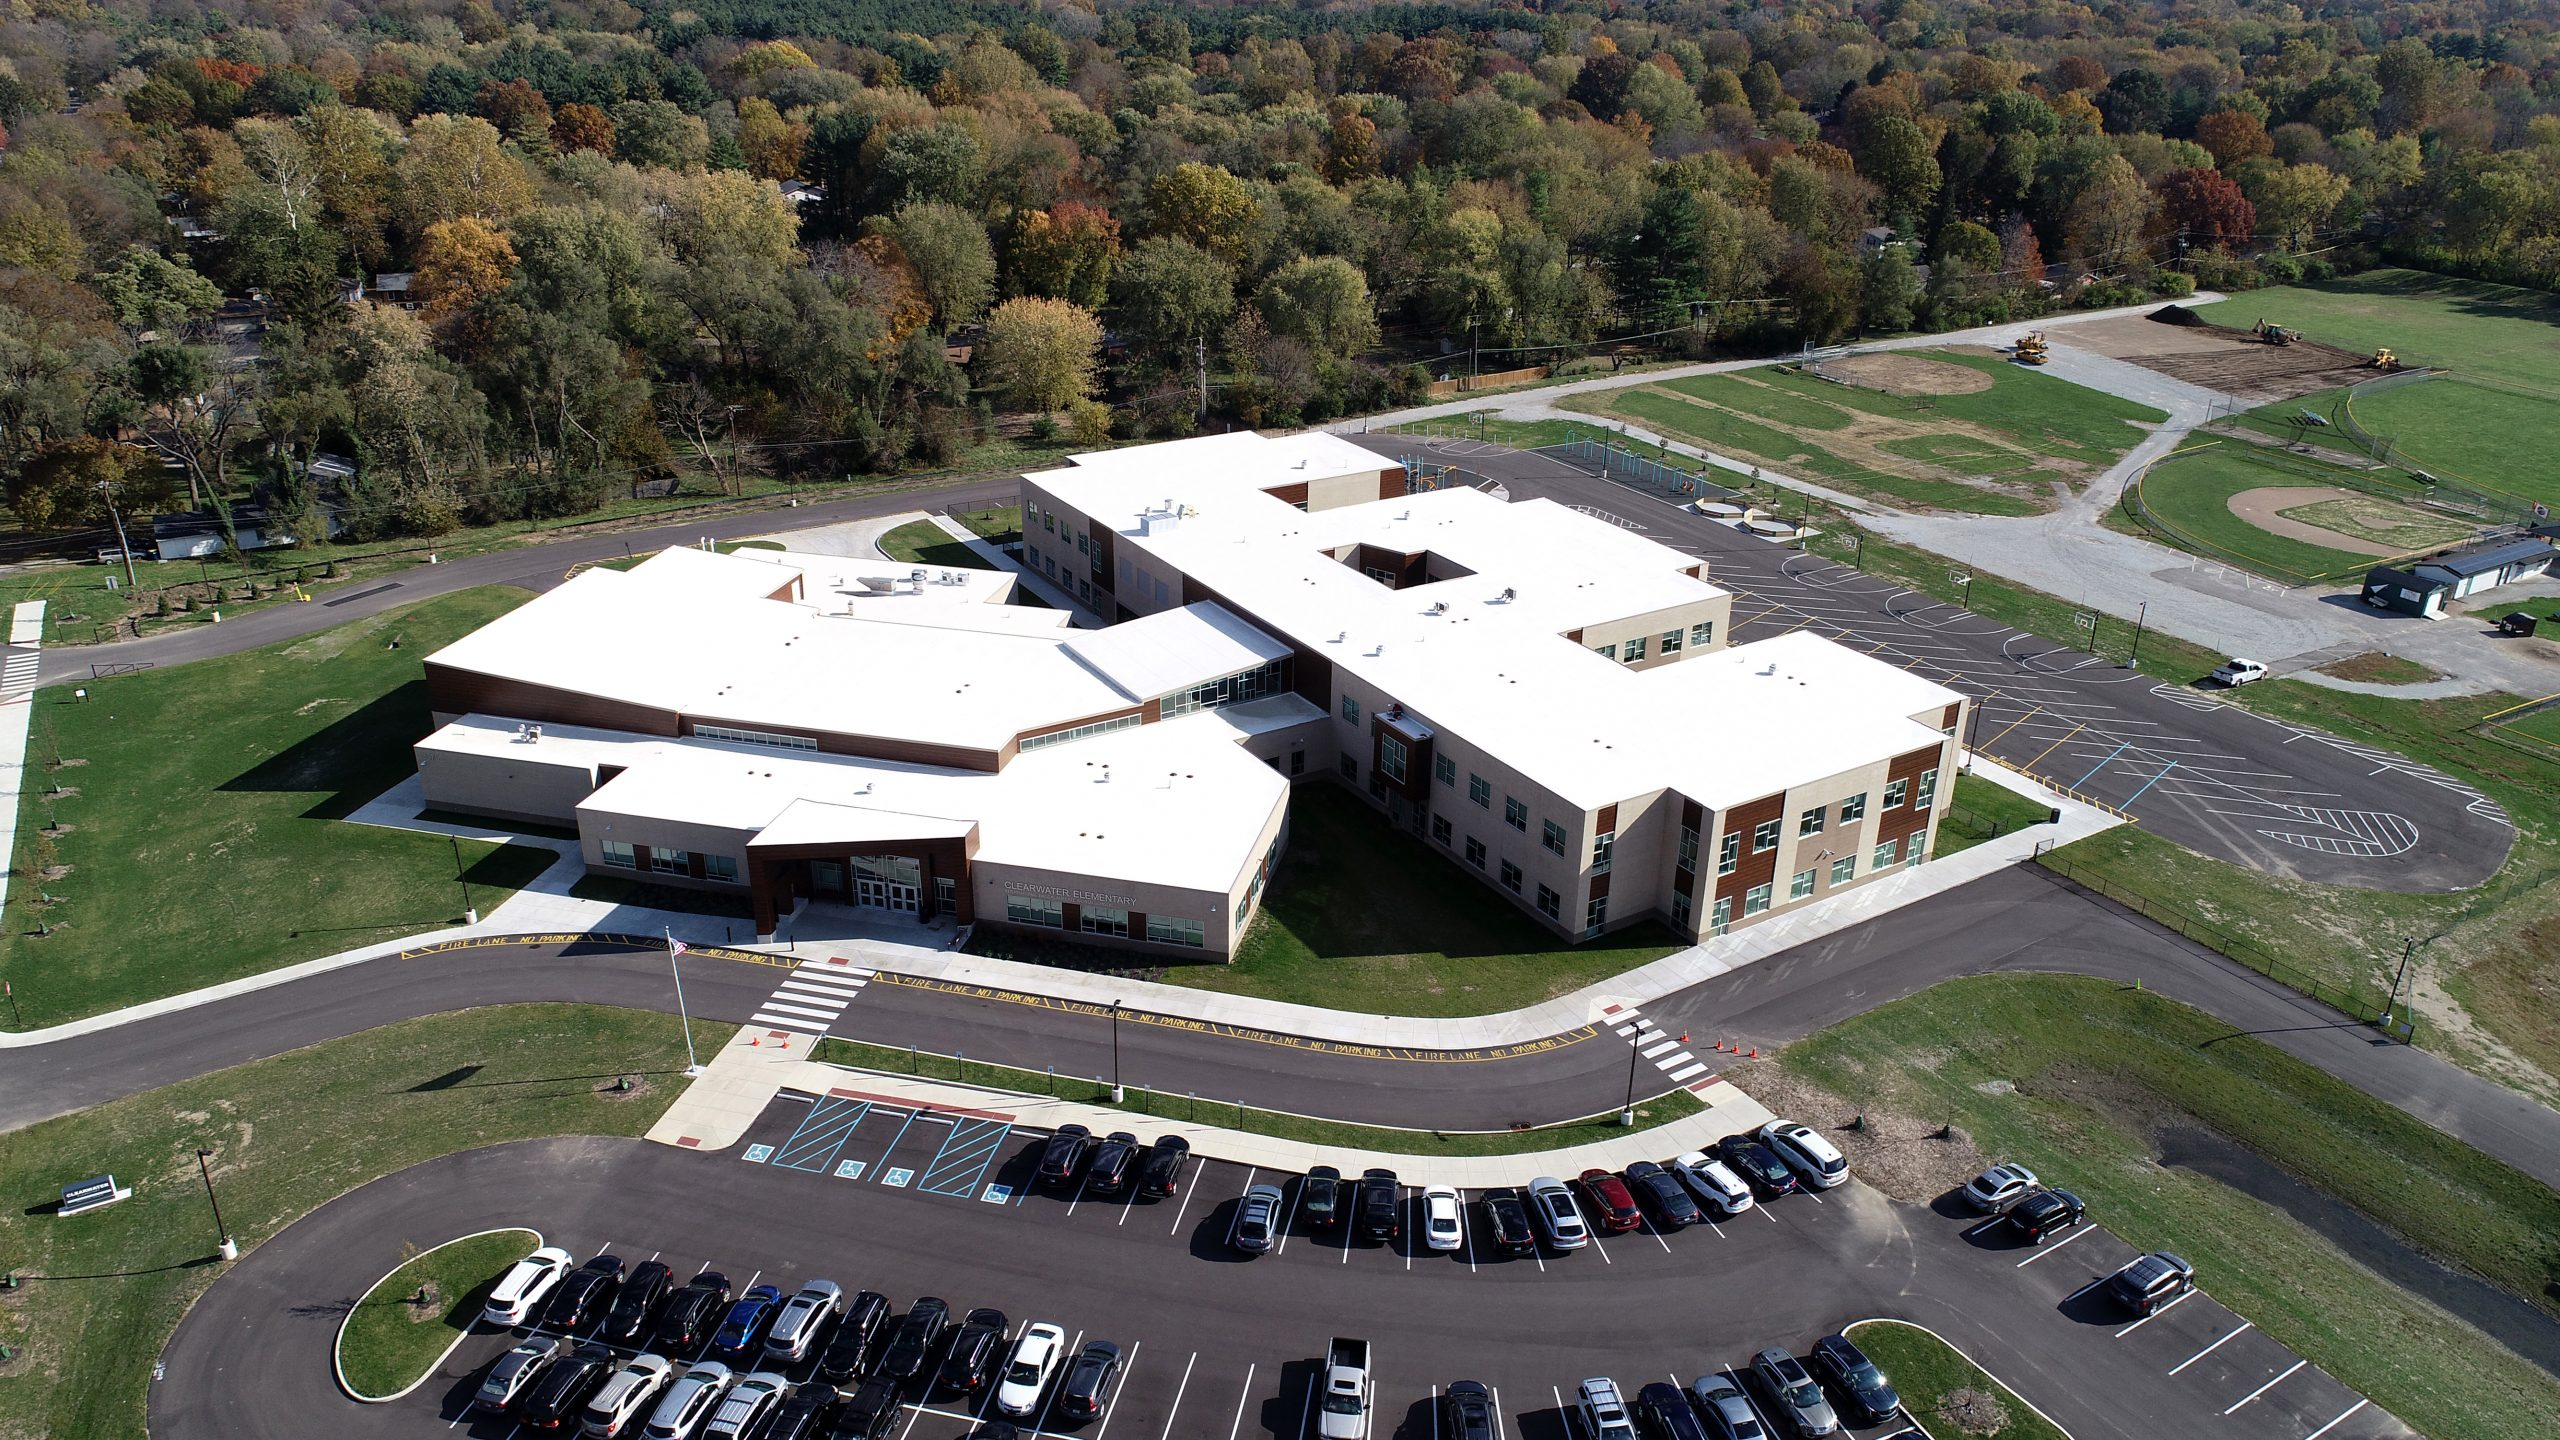 clearwater elementary commercial roofing project by ce reeve roofing in indiana